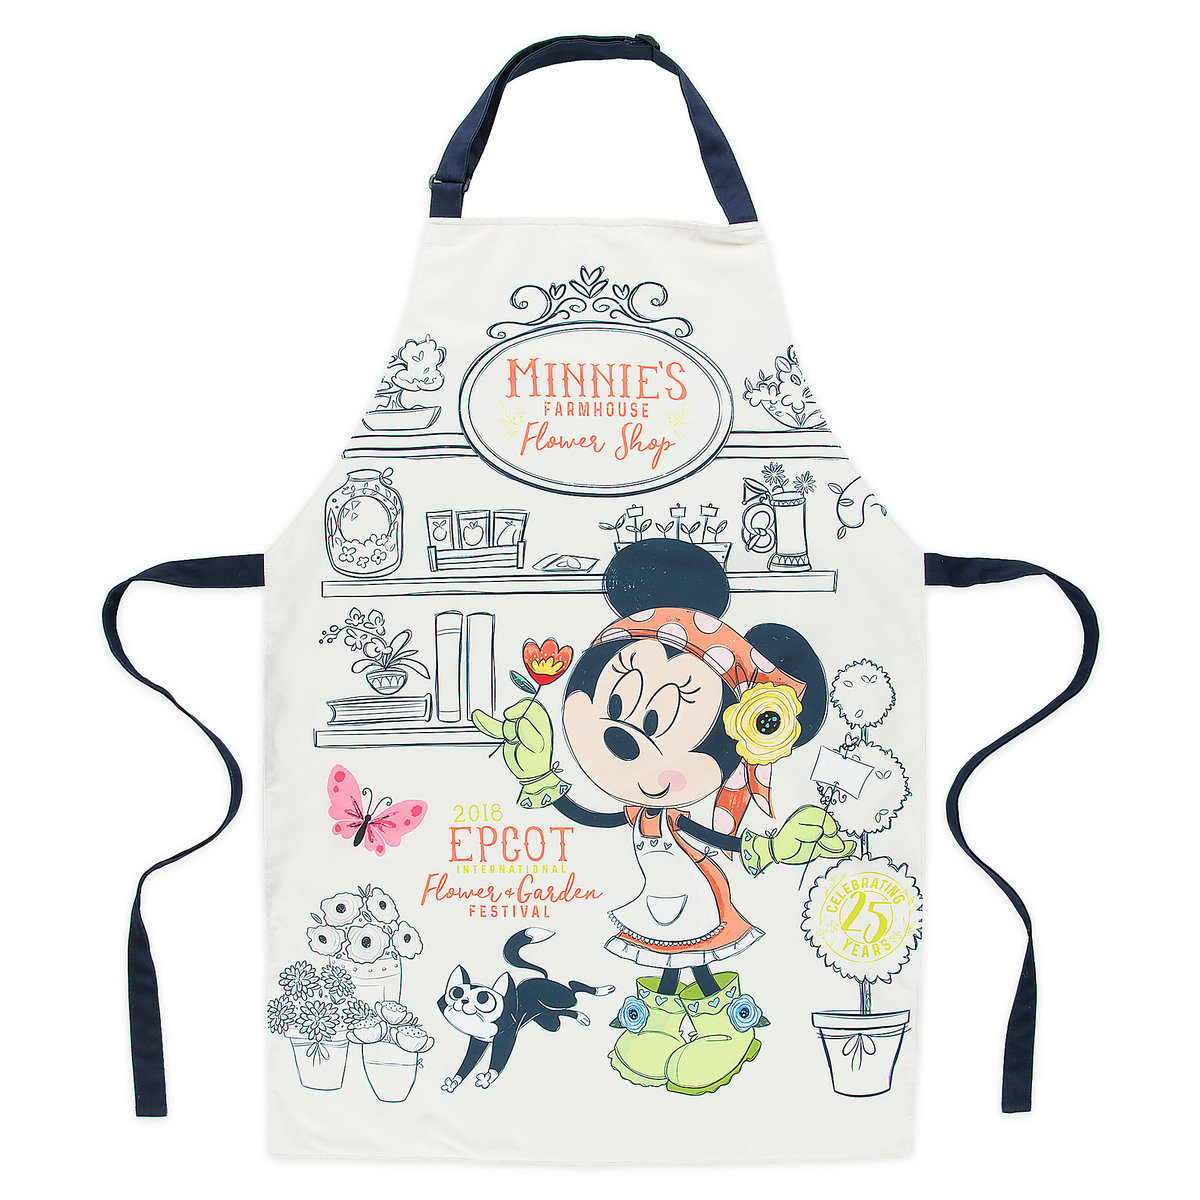 This Weeks Merchandise Finds on ShopDisney! 6